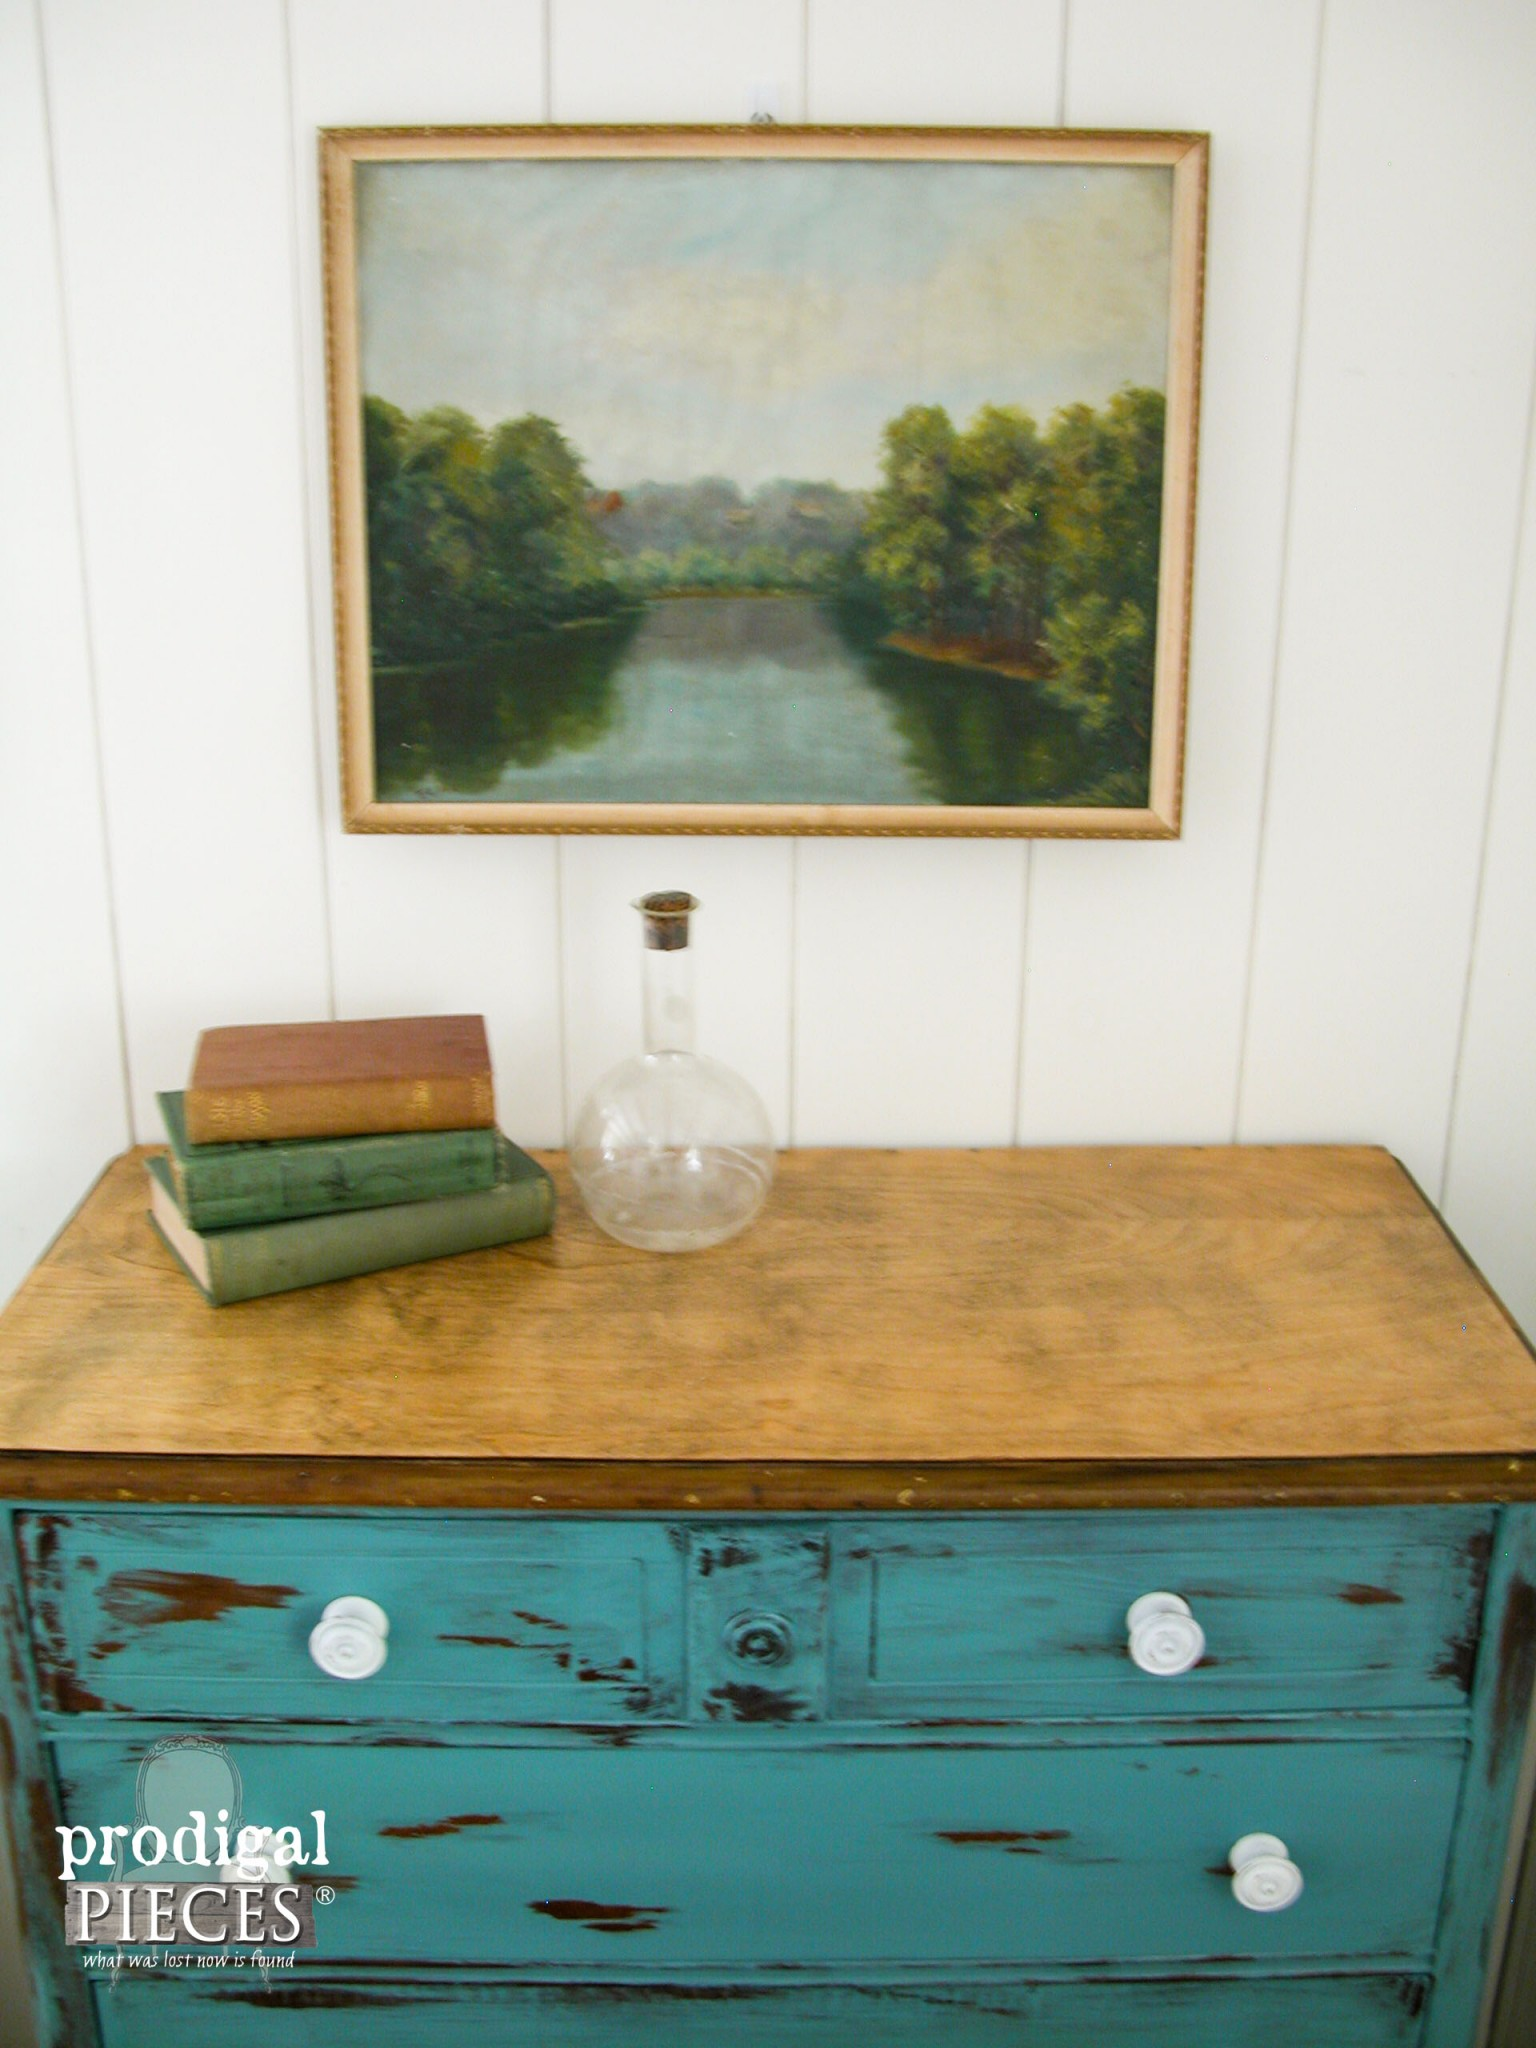 Top of Teal Chest Refinished with Pastoral Painting Above by Prodigal Pieces | www.prodigalpieces.com